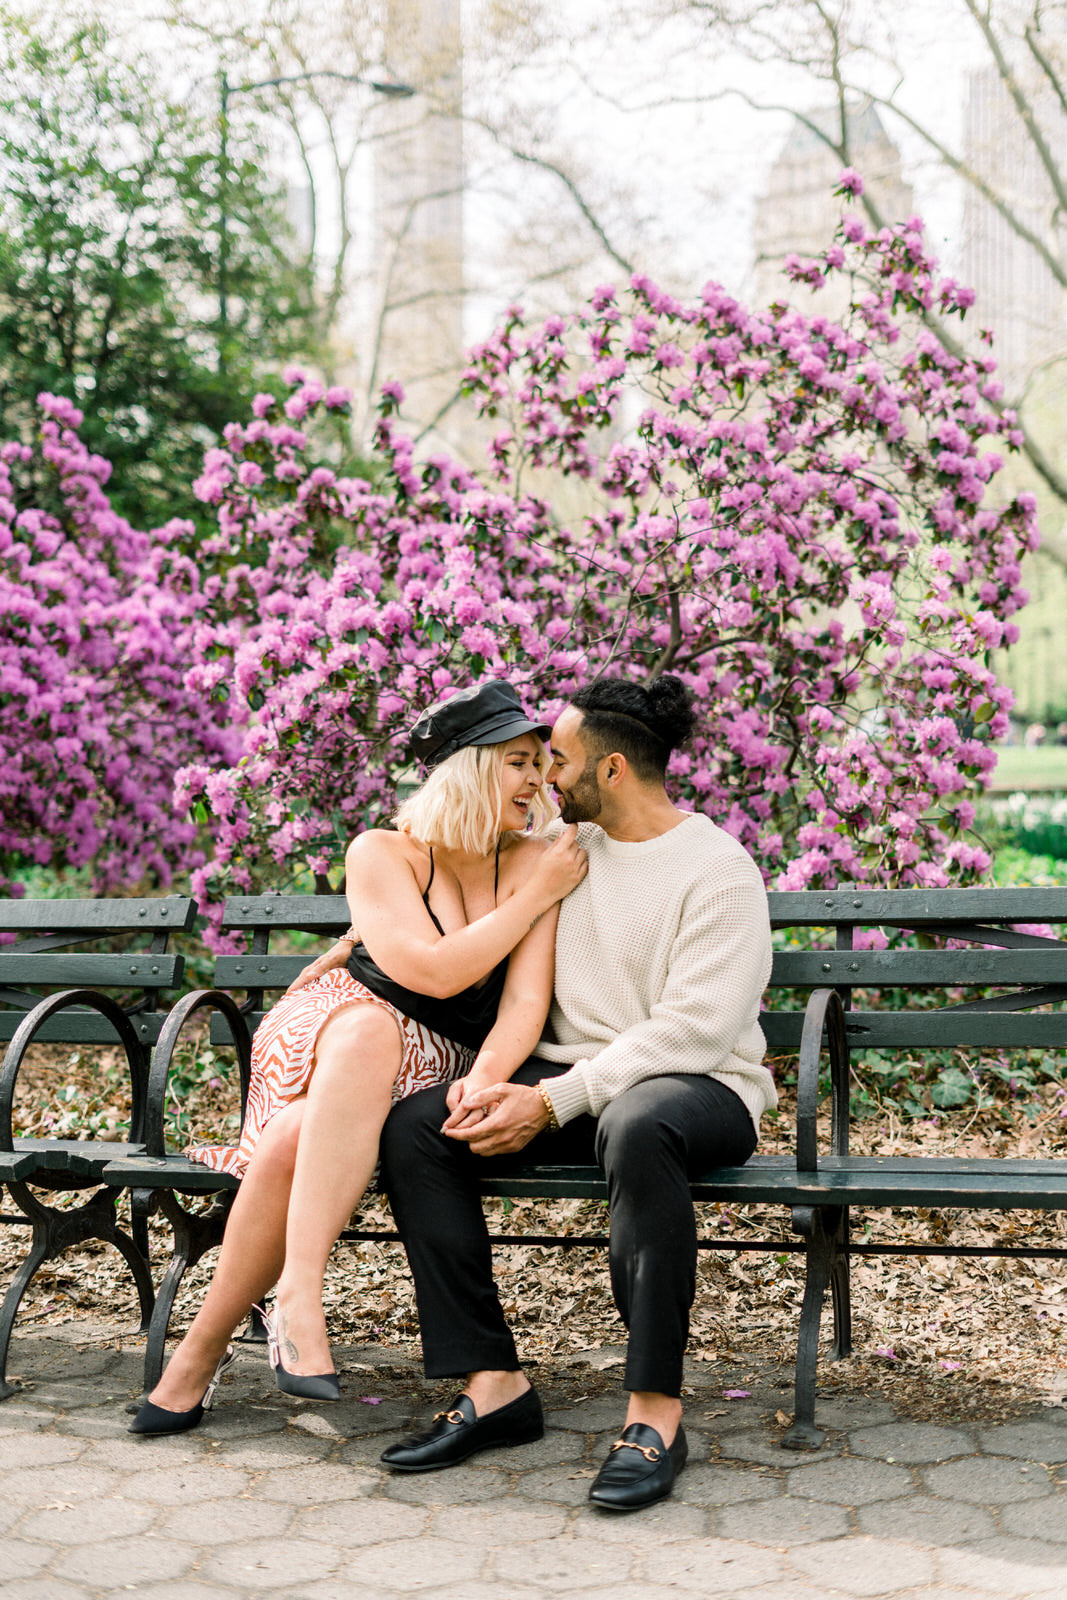 Spring in Central Park, Guide to the seasons in Central Park for Engagement Sessions